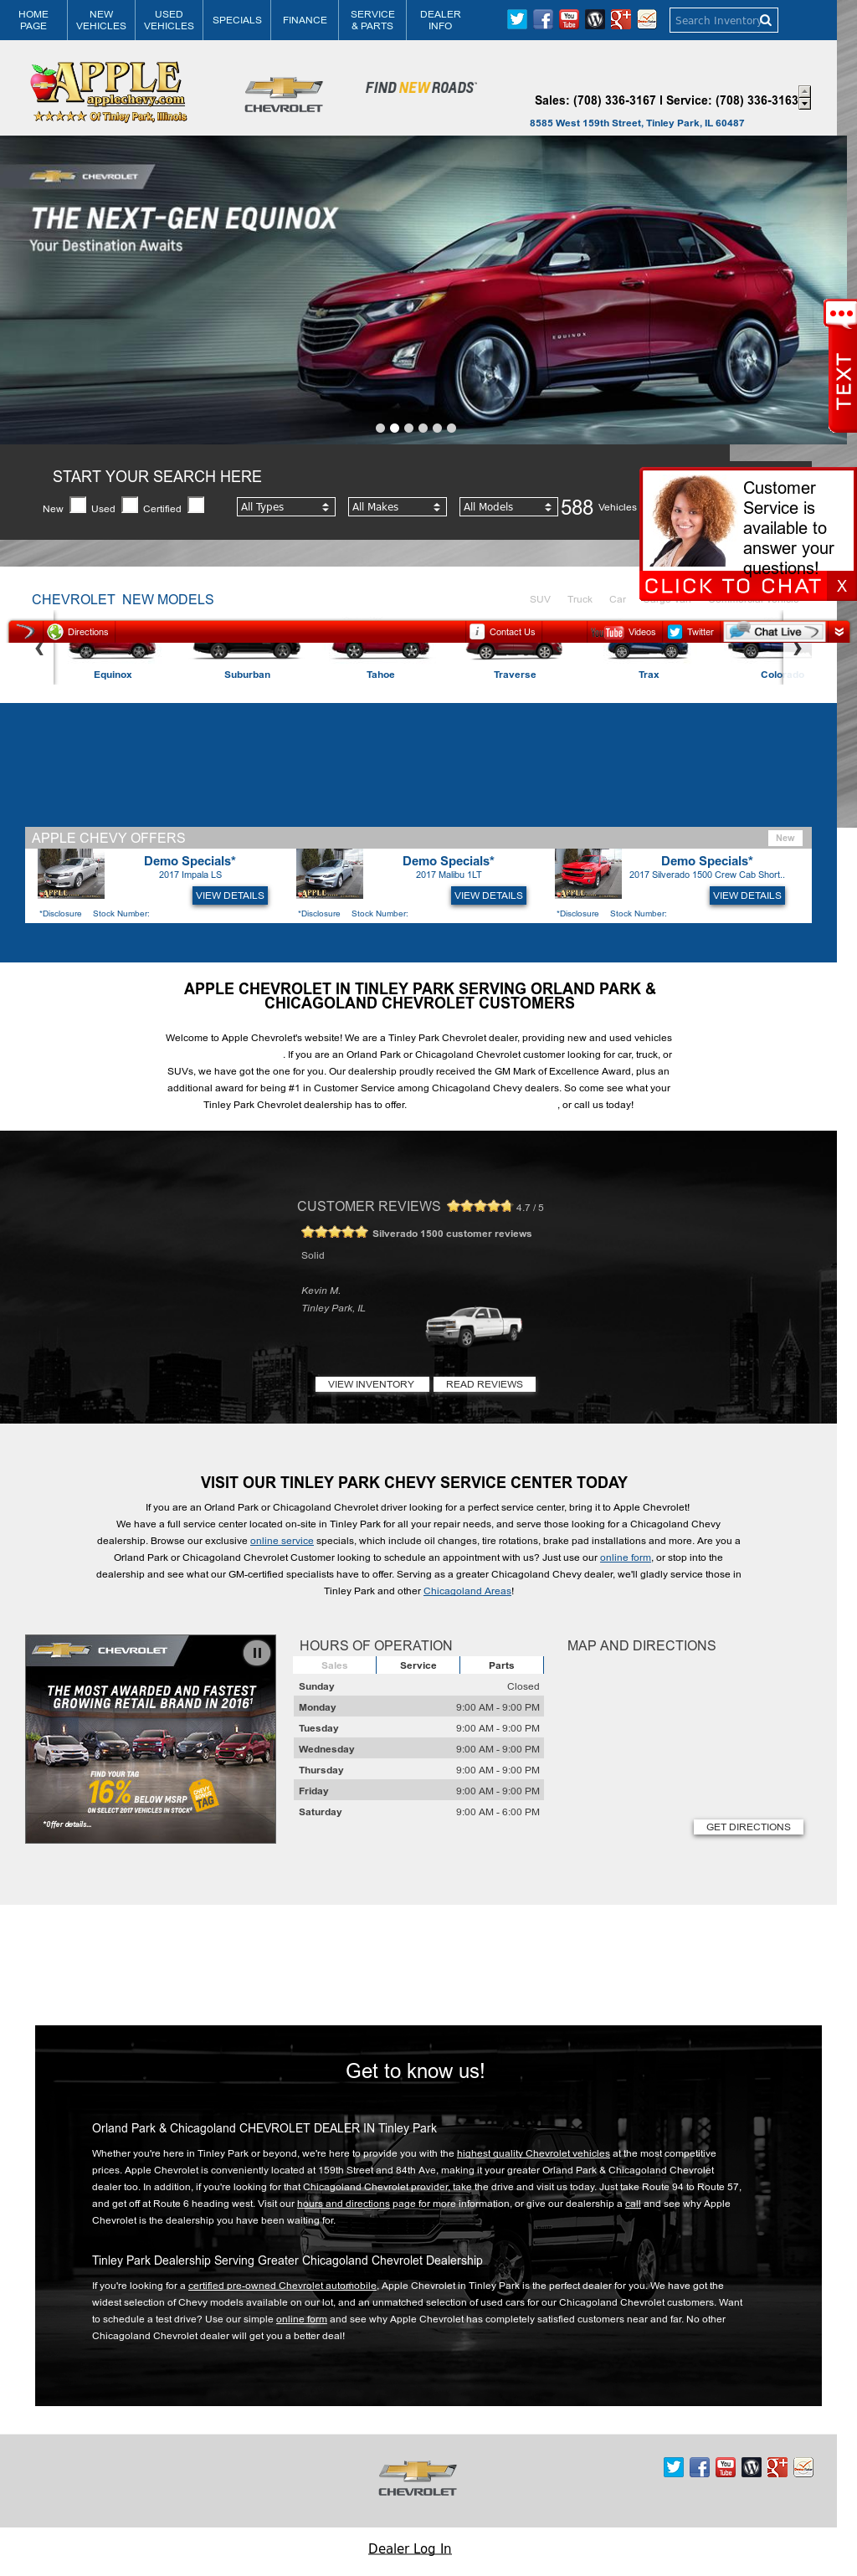 Apple Chevrolet Website History